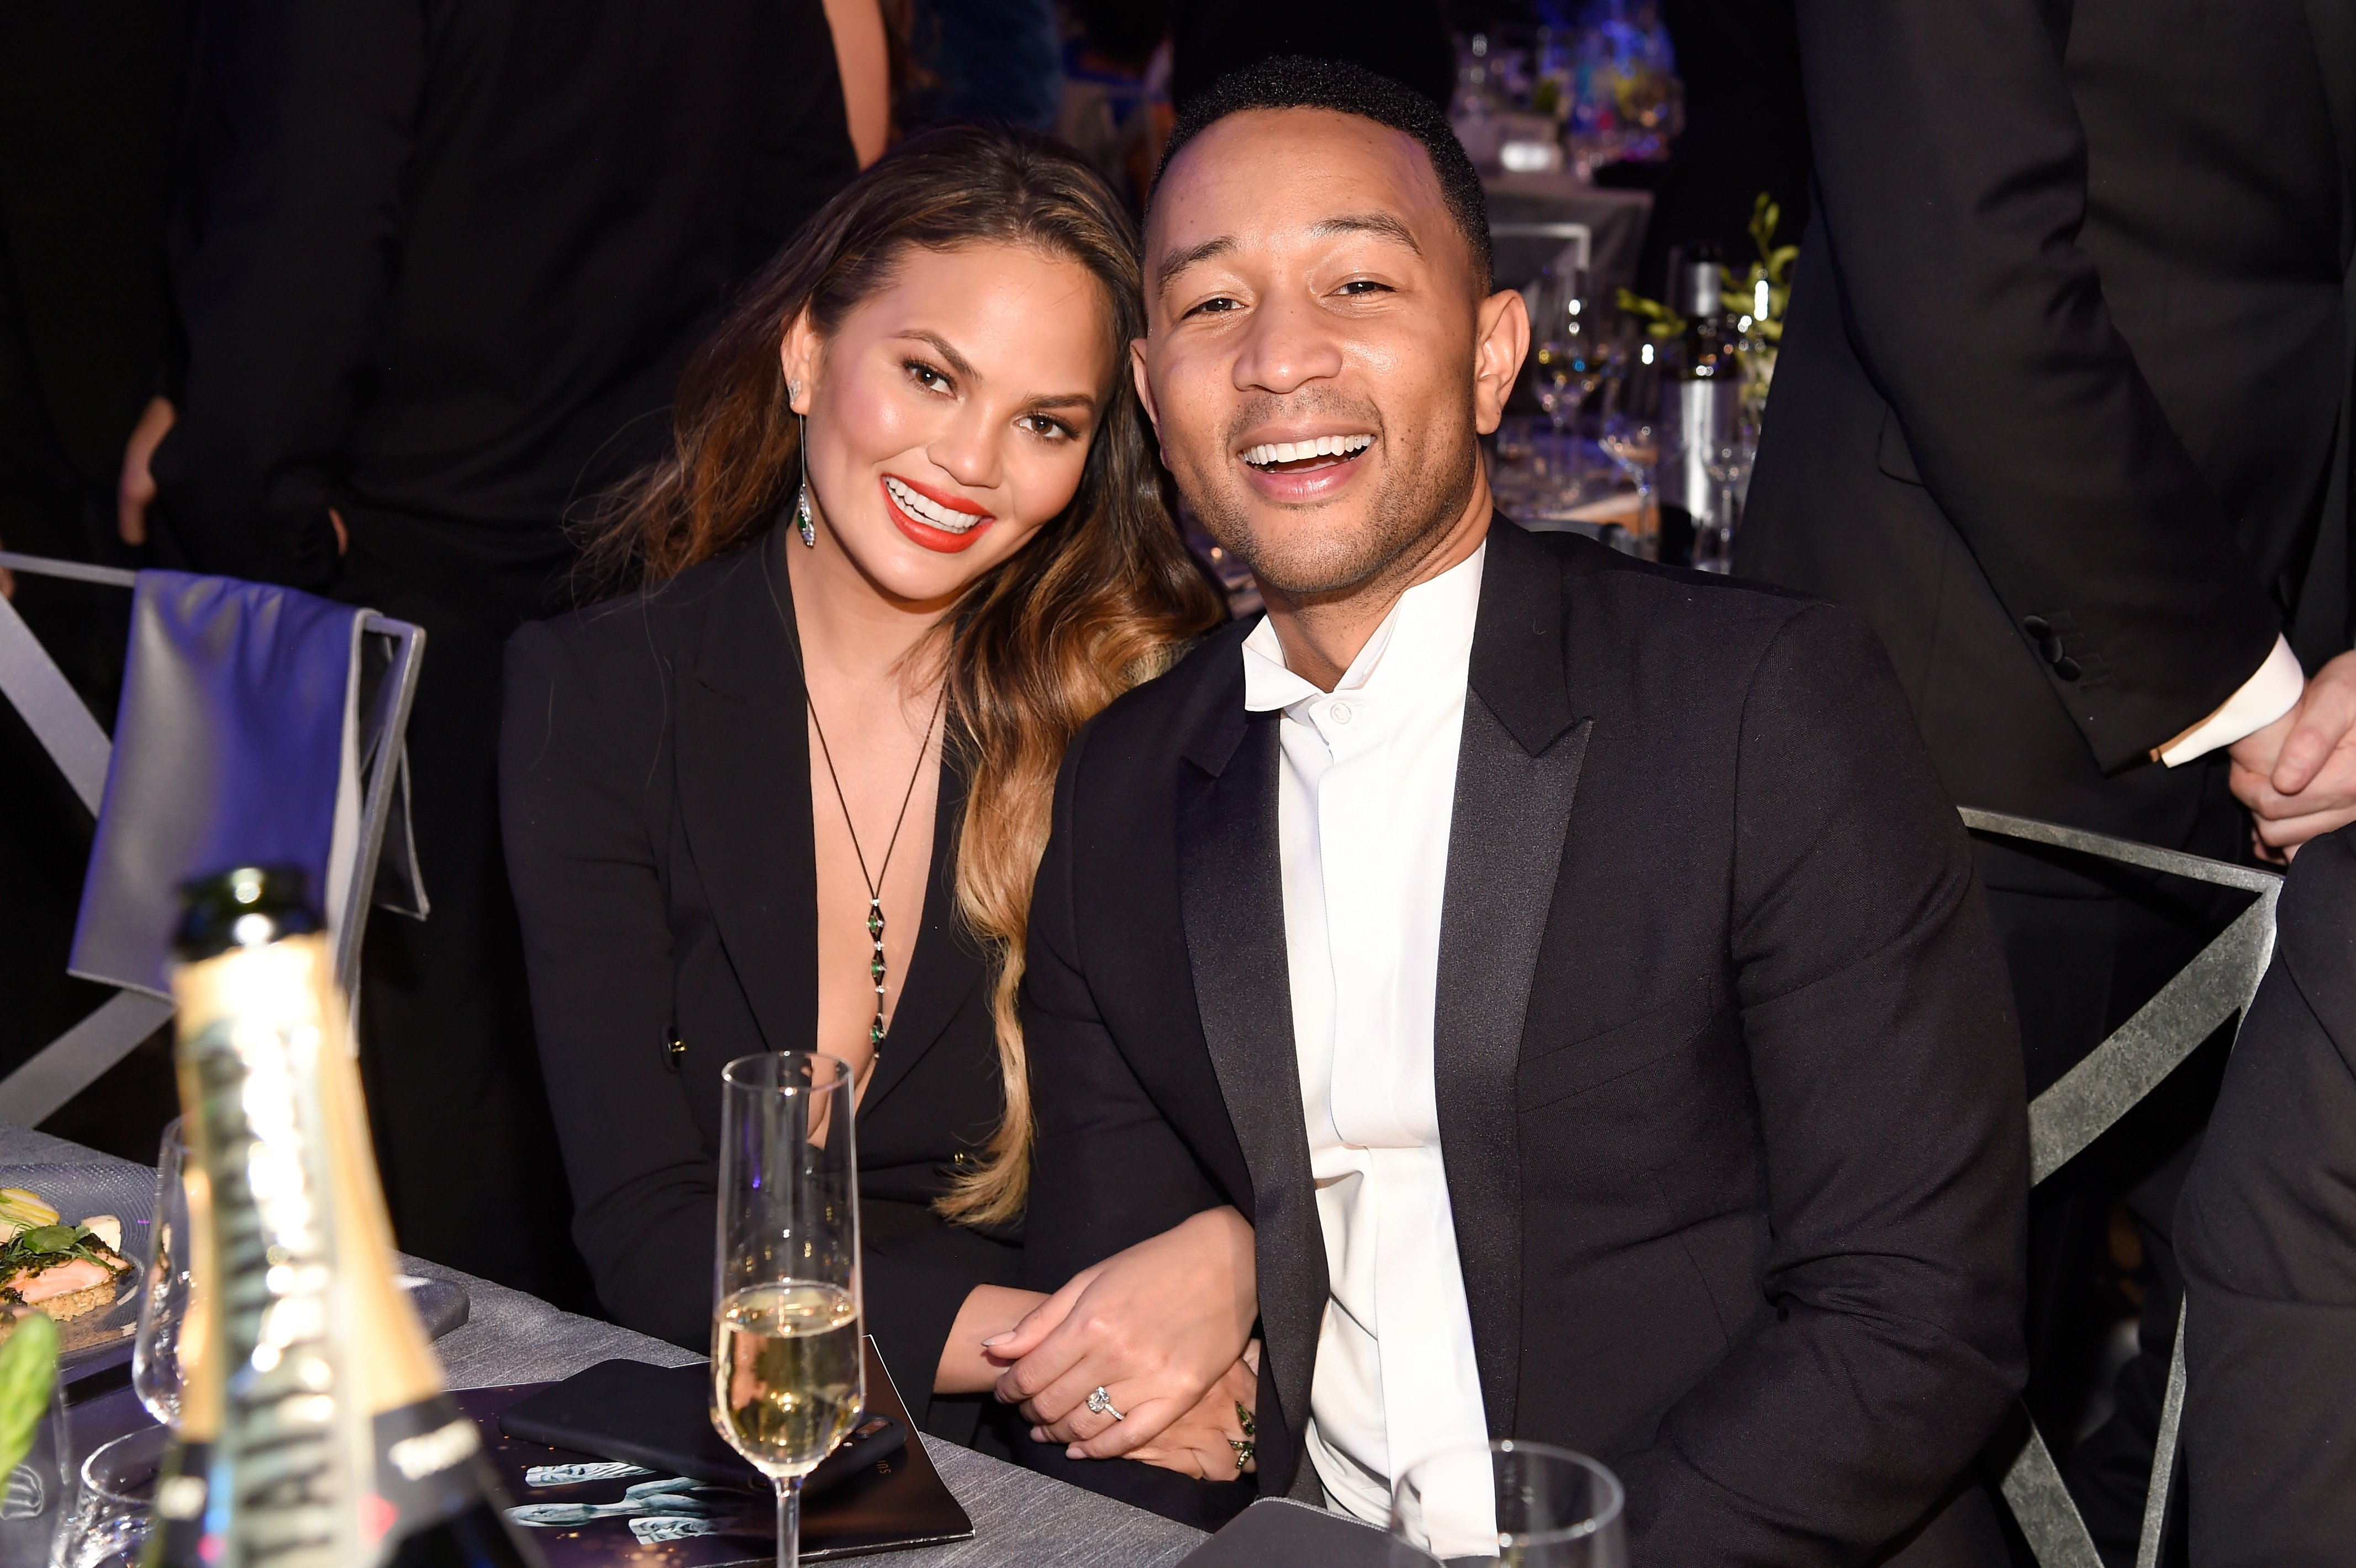 Chrissy Teigen and John Legend during The 23rd Annual Screen Actors Guild Awards on January 29, 2017 in Los Angeles, California | Photo: Getty Images